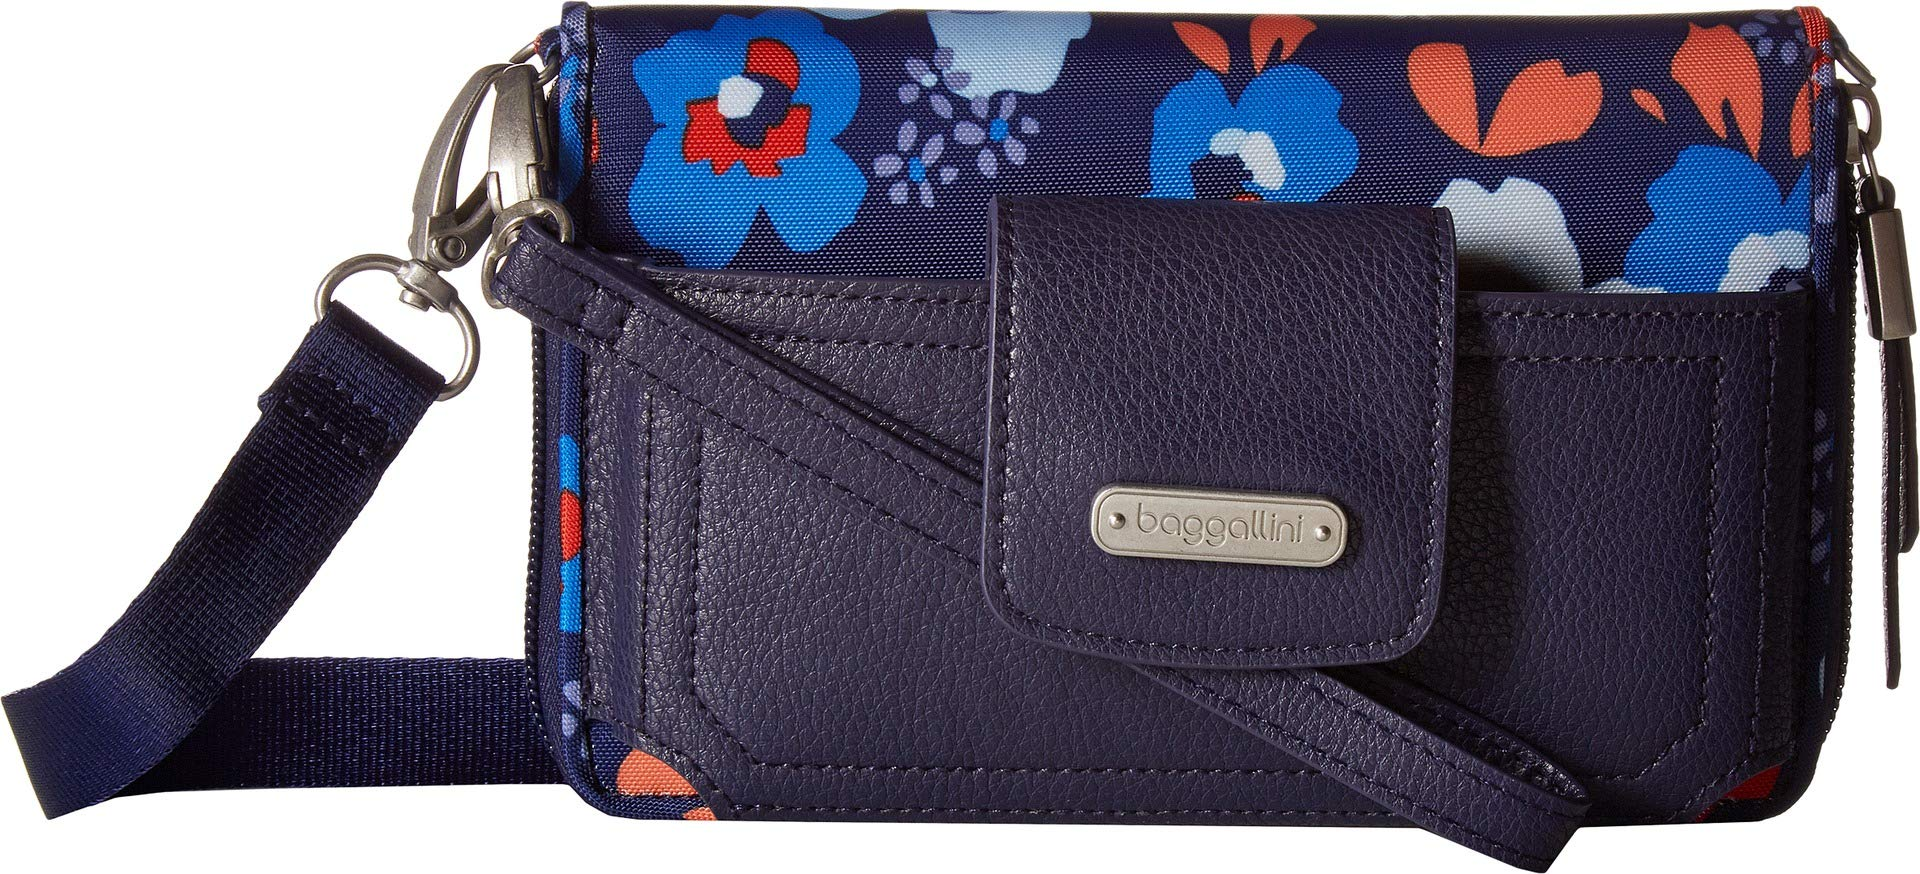 Baggallini Women's New Classic RFID Phone Wallet Crossbody Spring Bloom One Size by Baggallini